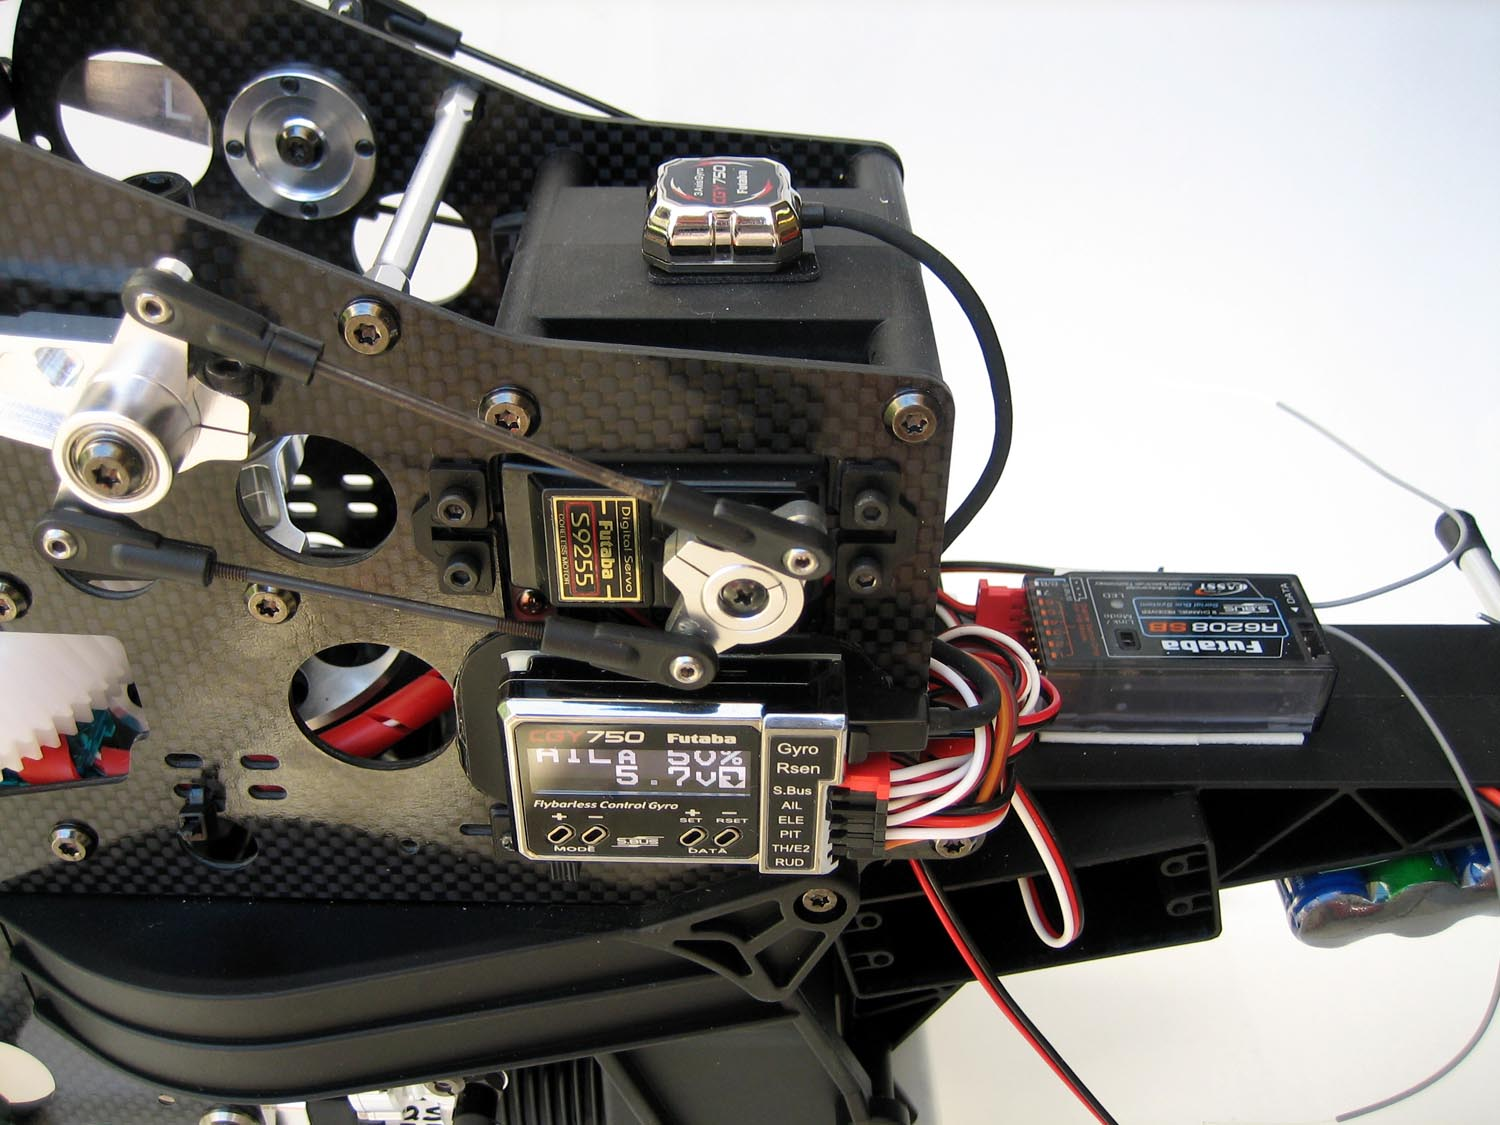 Getting to Know Your Servos